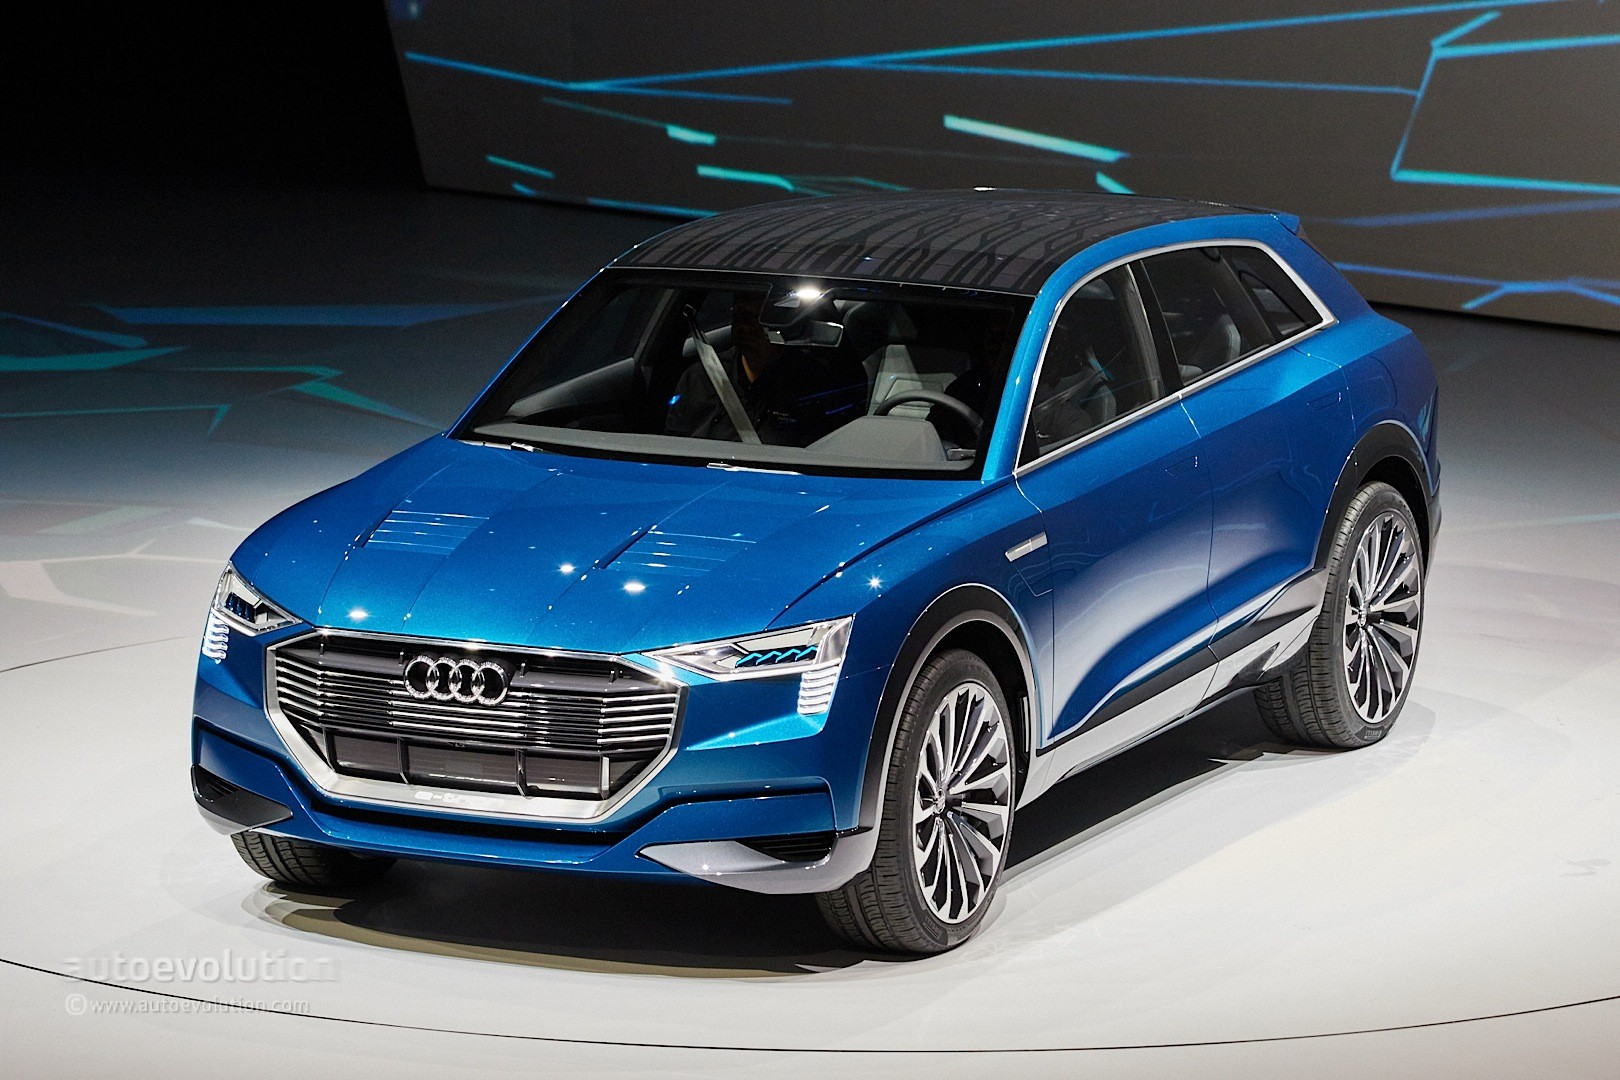 2018 audi electric suv. fine audi audi etron quattro concept live photos for 2018 audi electric suv l